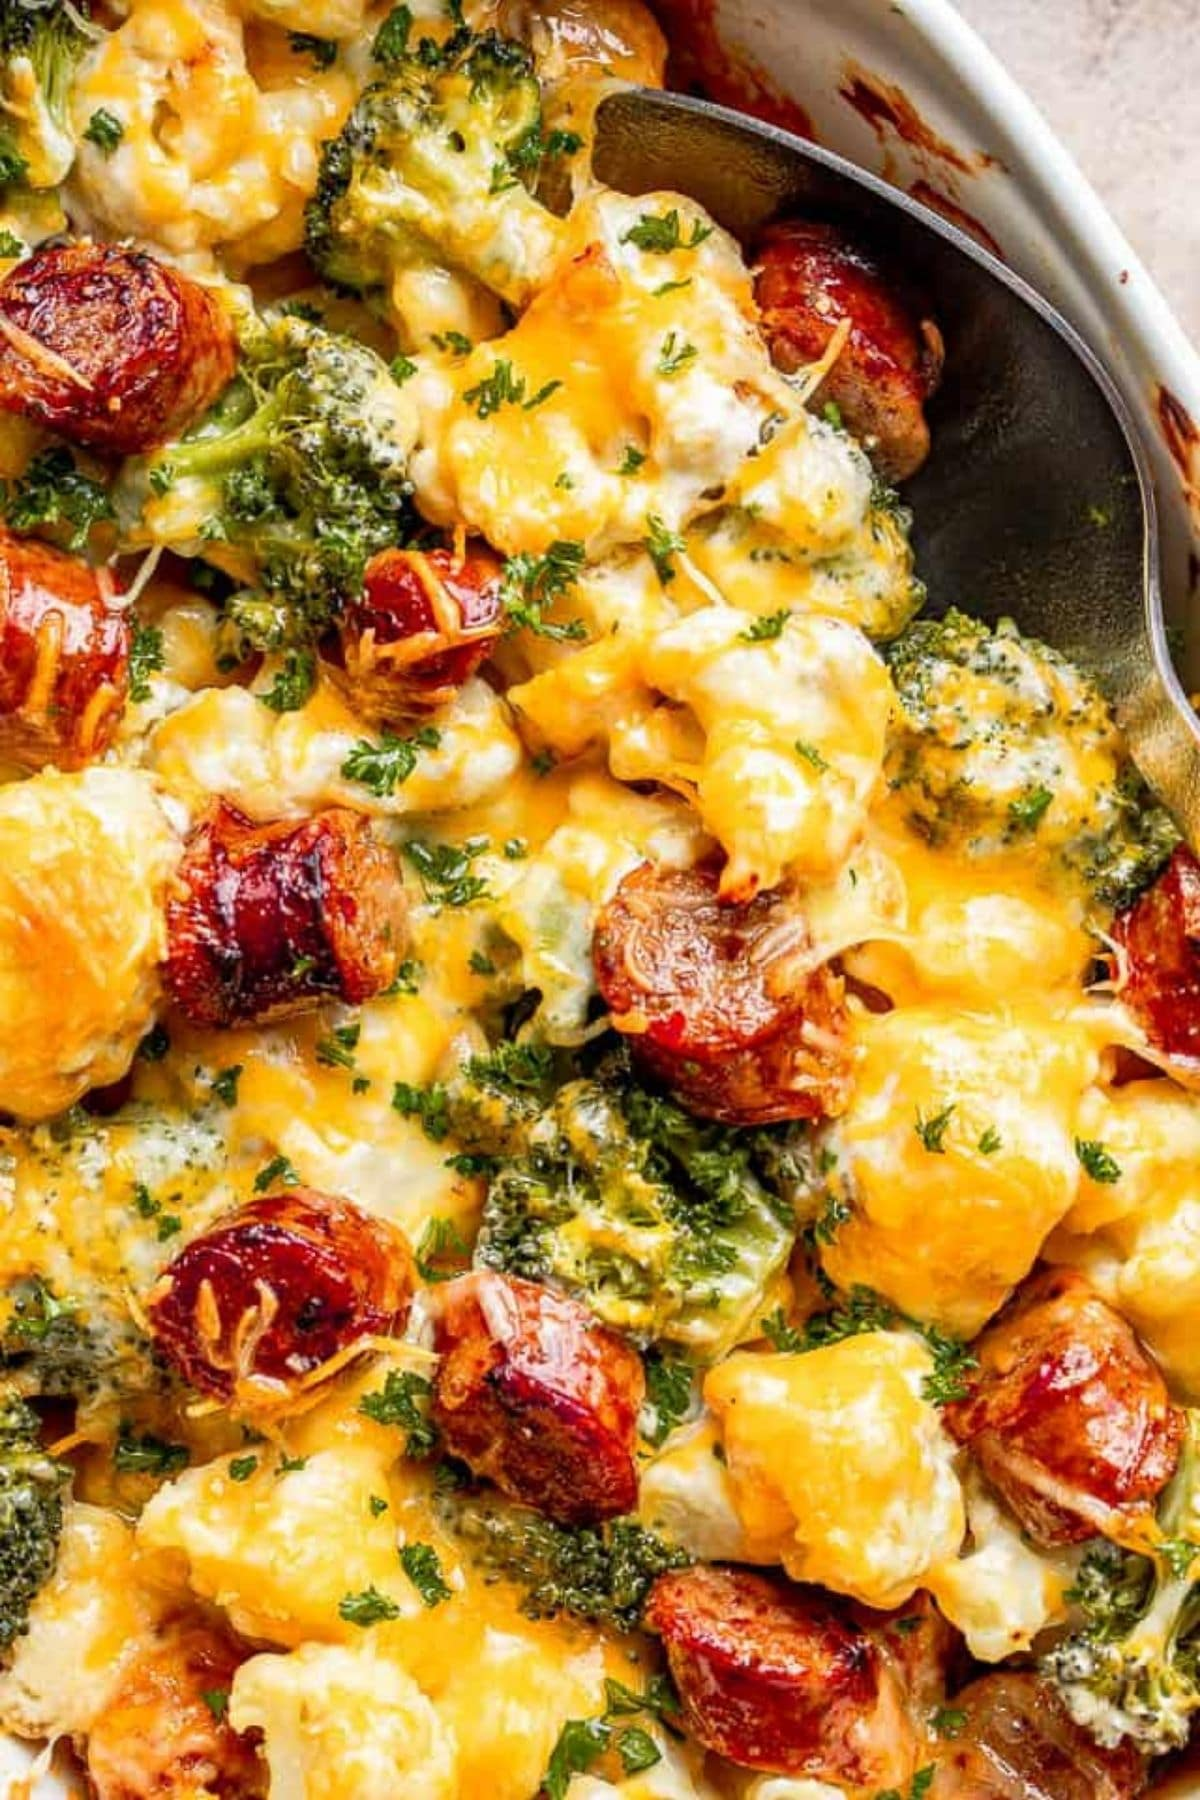 Sausage cauliflower and broccoli in bowl topped with cheese